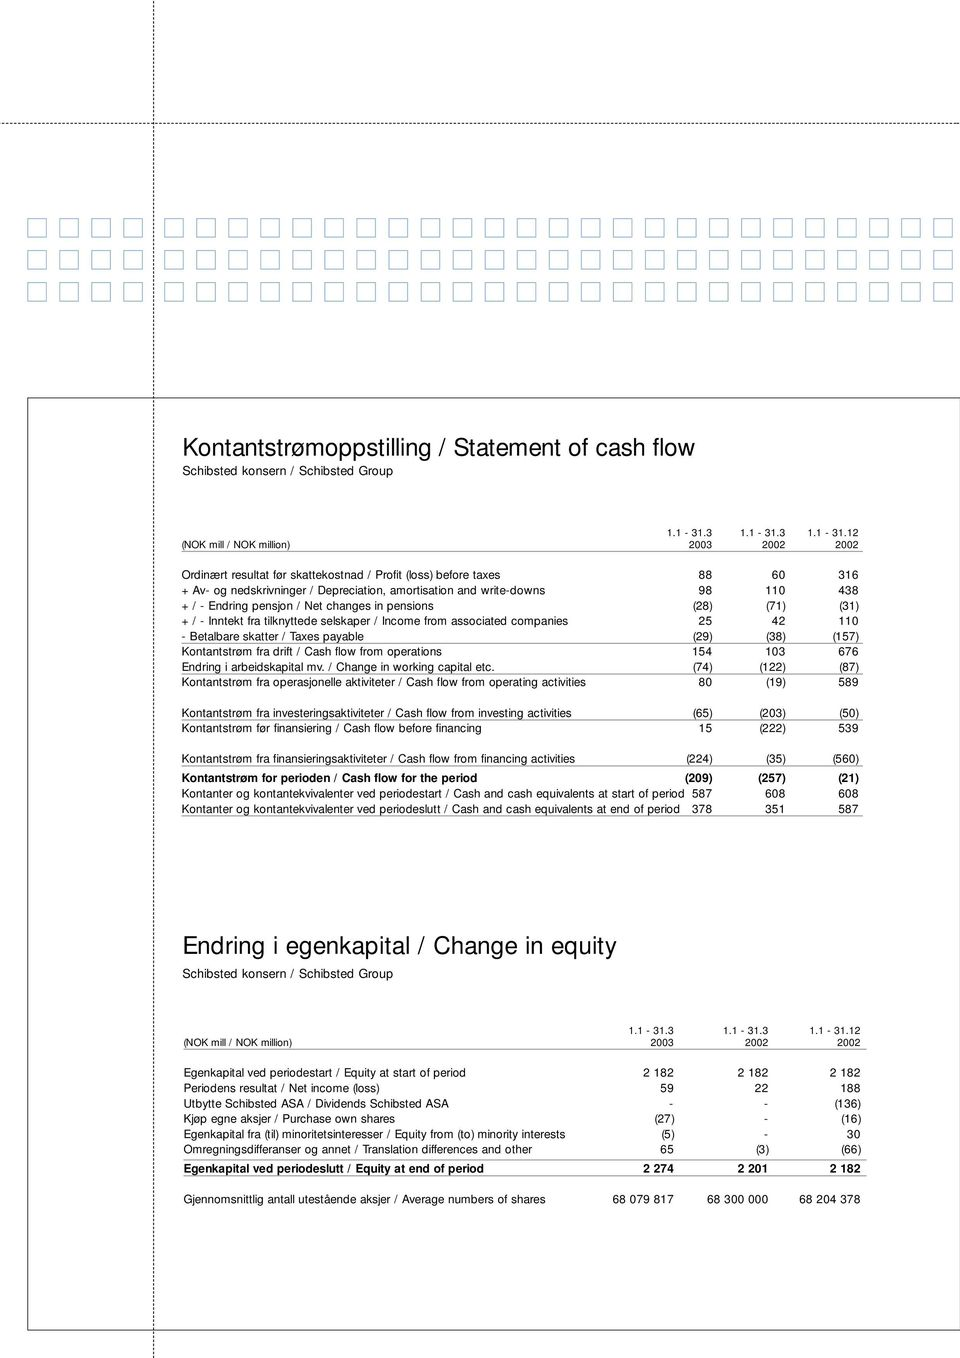 12 (NOK mill / NOK million) 2003 2002 2002 Ordinært resultat før skattekostnad / Profit (loss) before taxes 88 60 316 + Av- og nedskrivninger / Depreciation, amortisation and write-downs 98 110 438 +